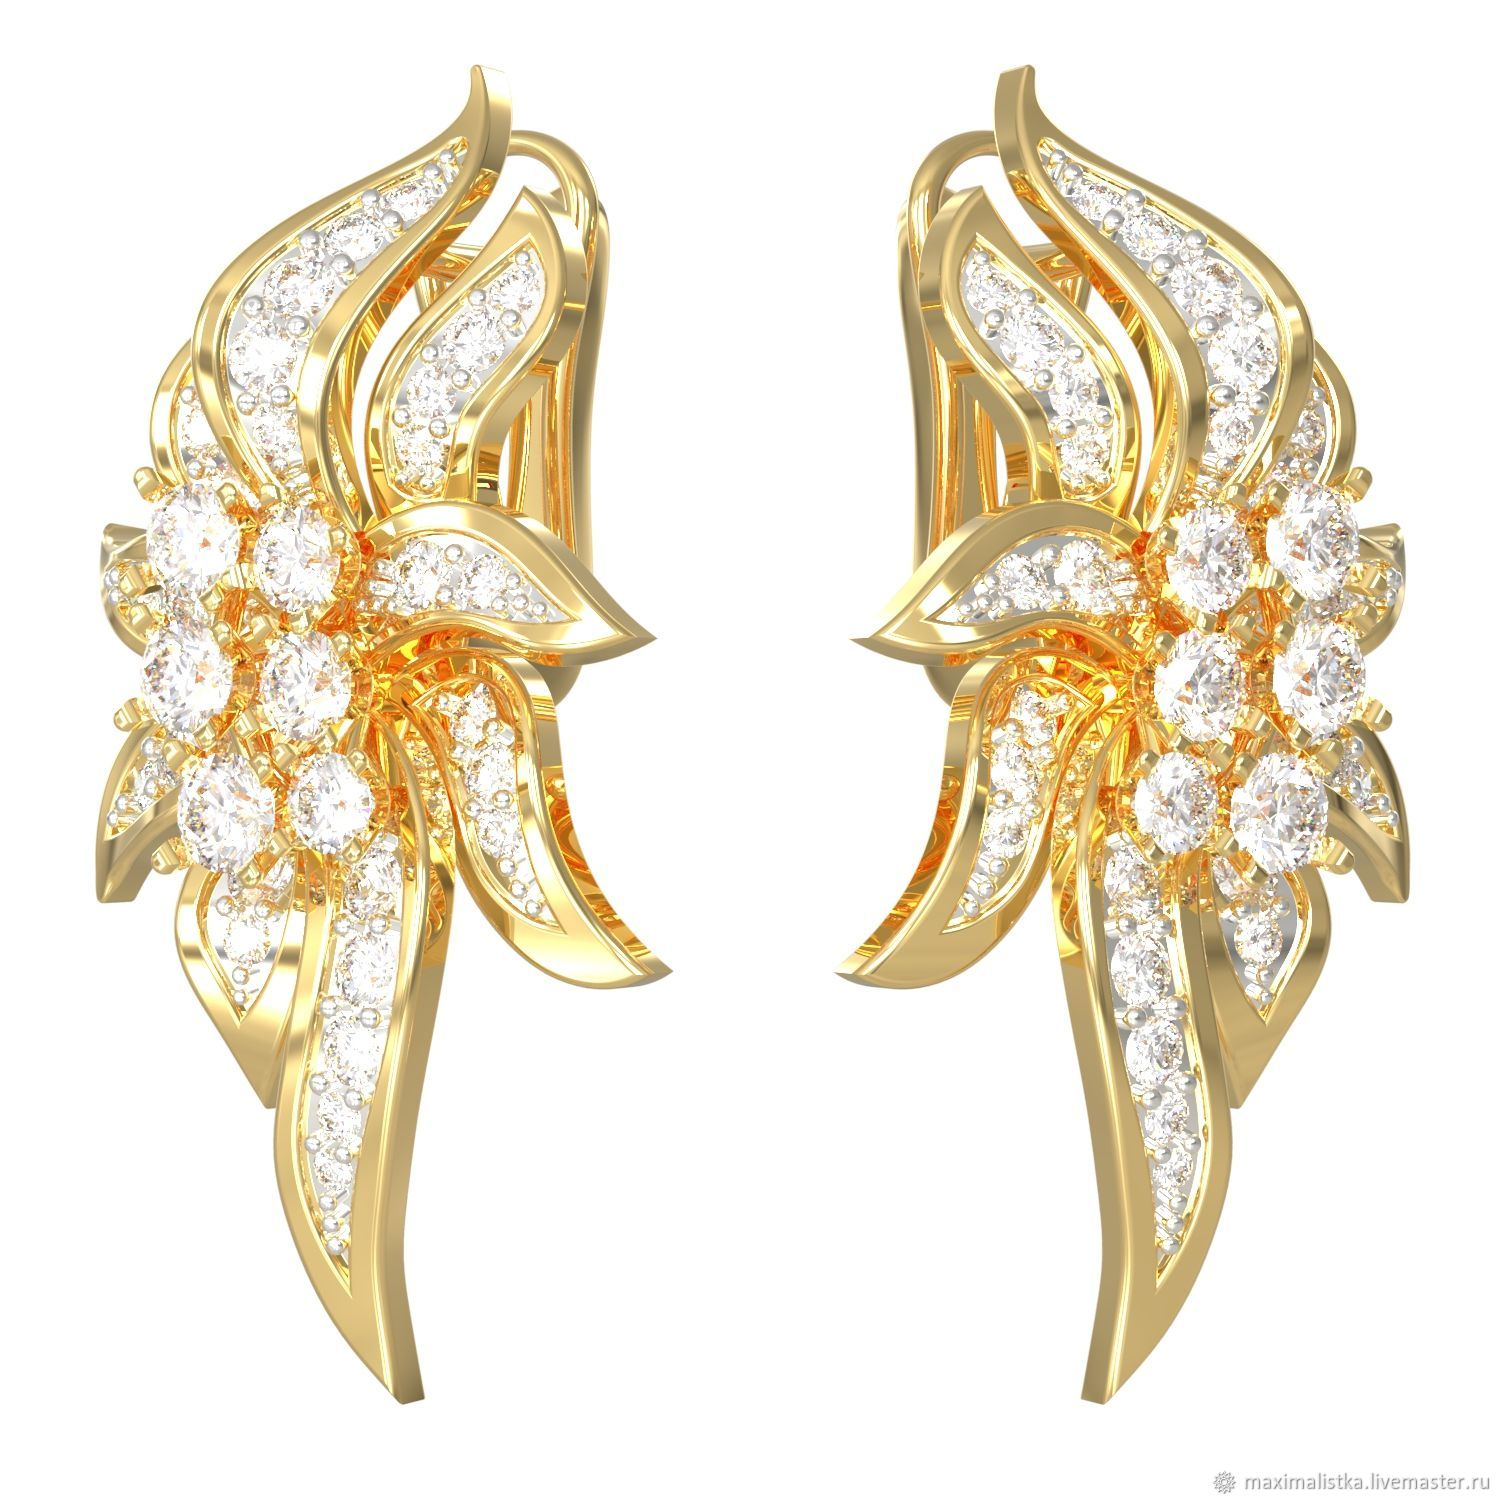 Gold earrings Liana diamond – shop online on Livemaster with